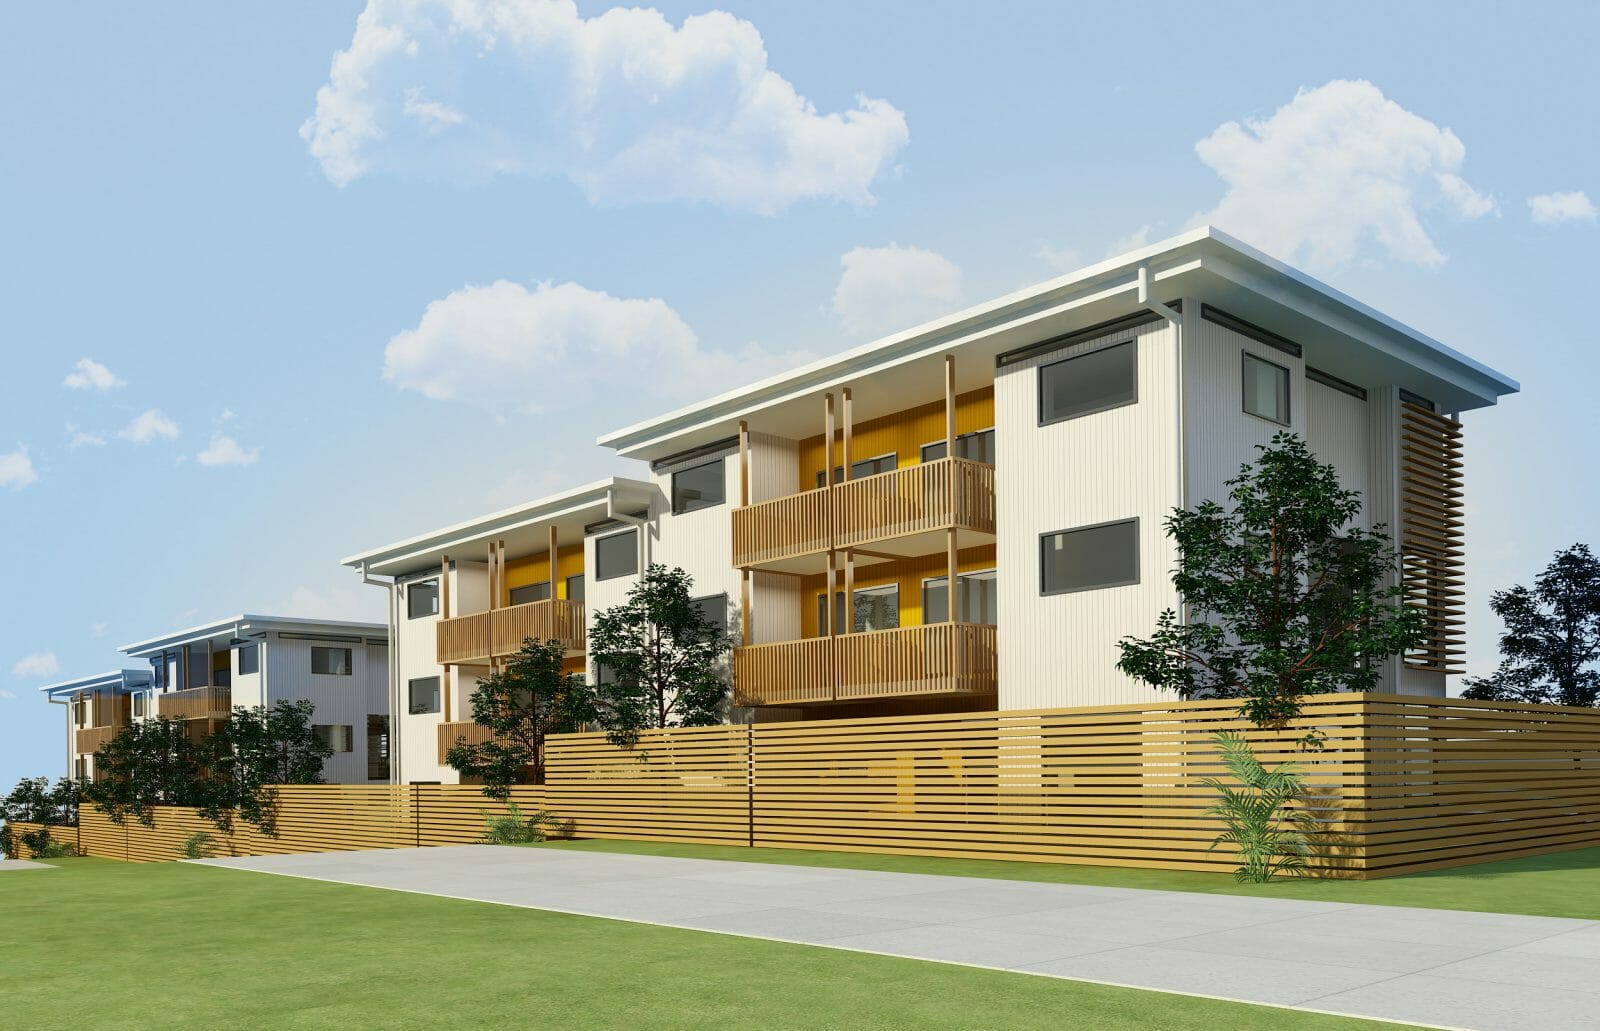 8 Terraced Housing Development in North Shore